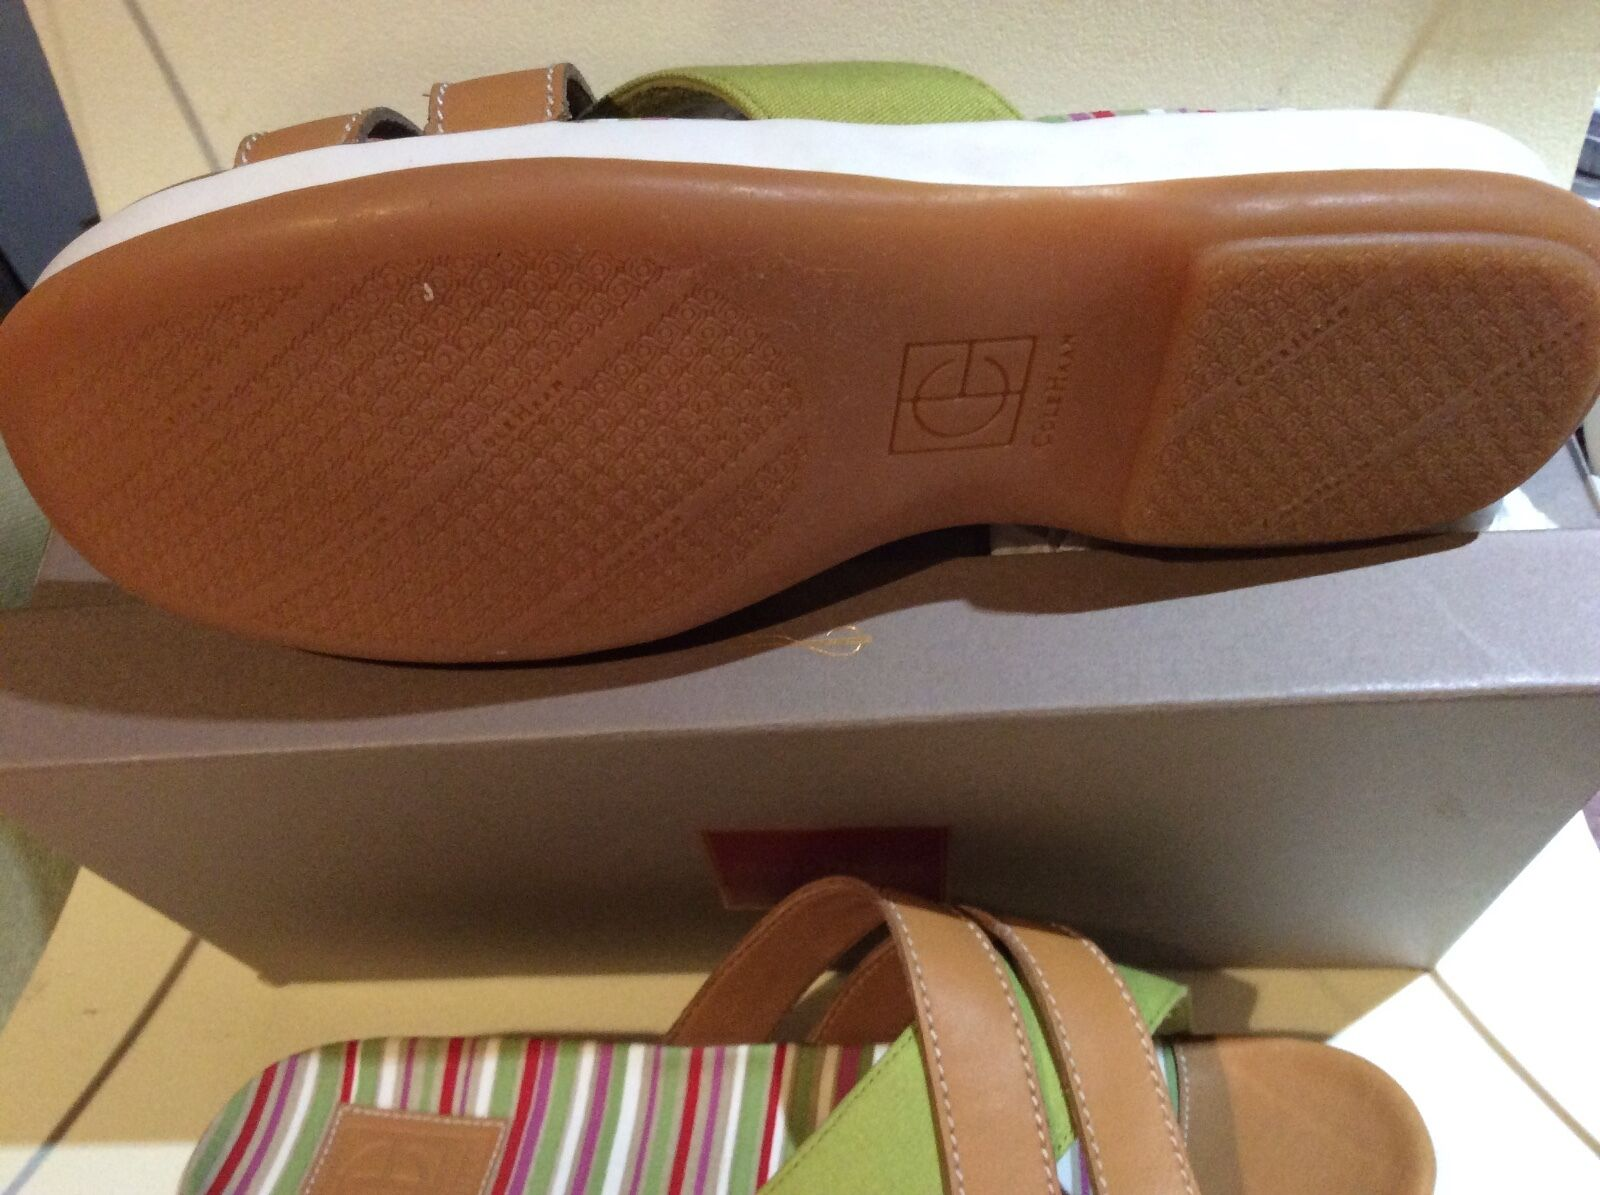 Cole Haan Leather and Canvas stripped sandals, Dimensione 11B, 11B, 11B, NWB cab566